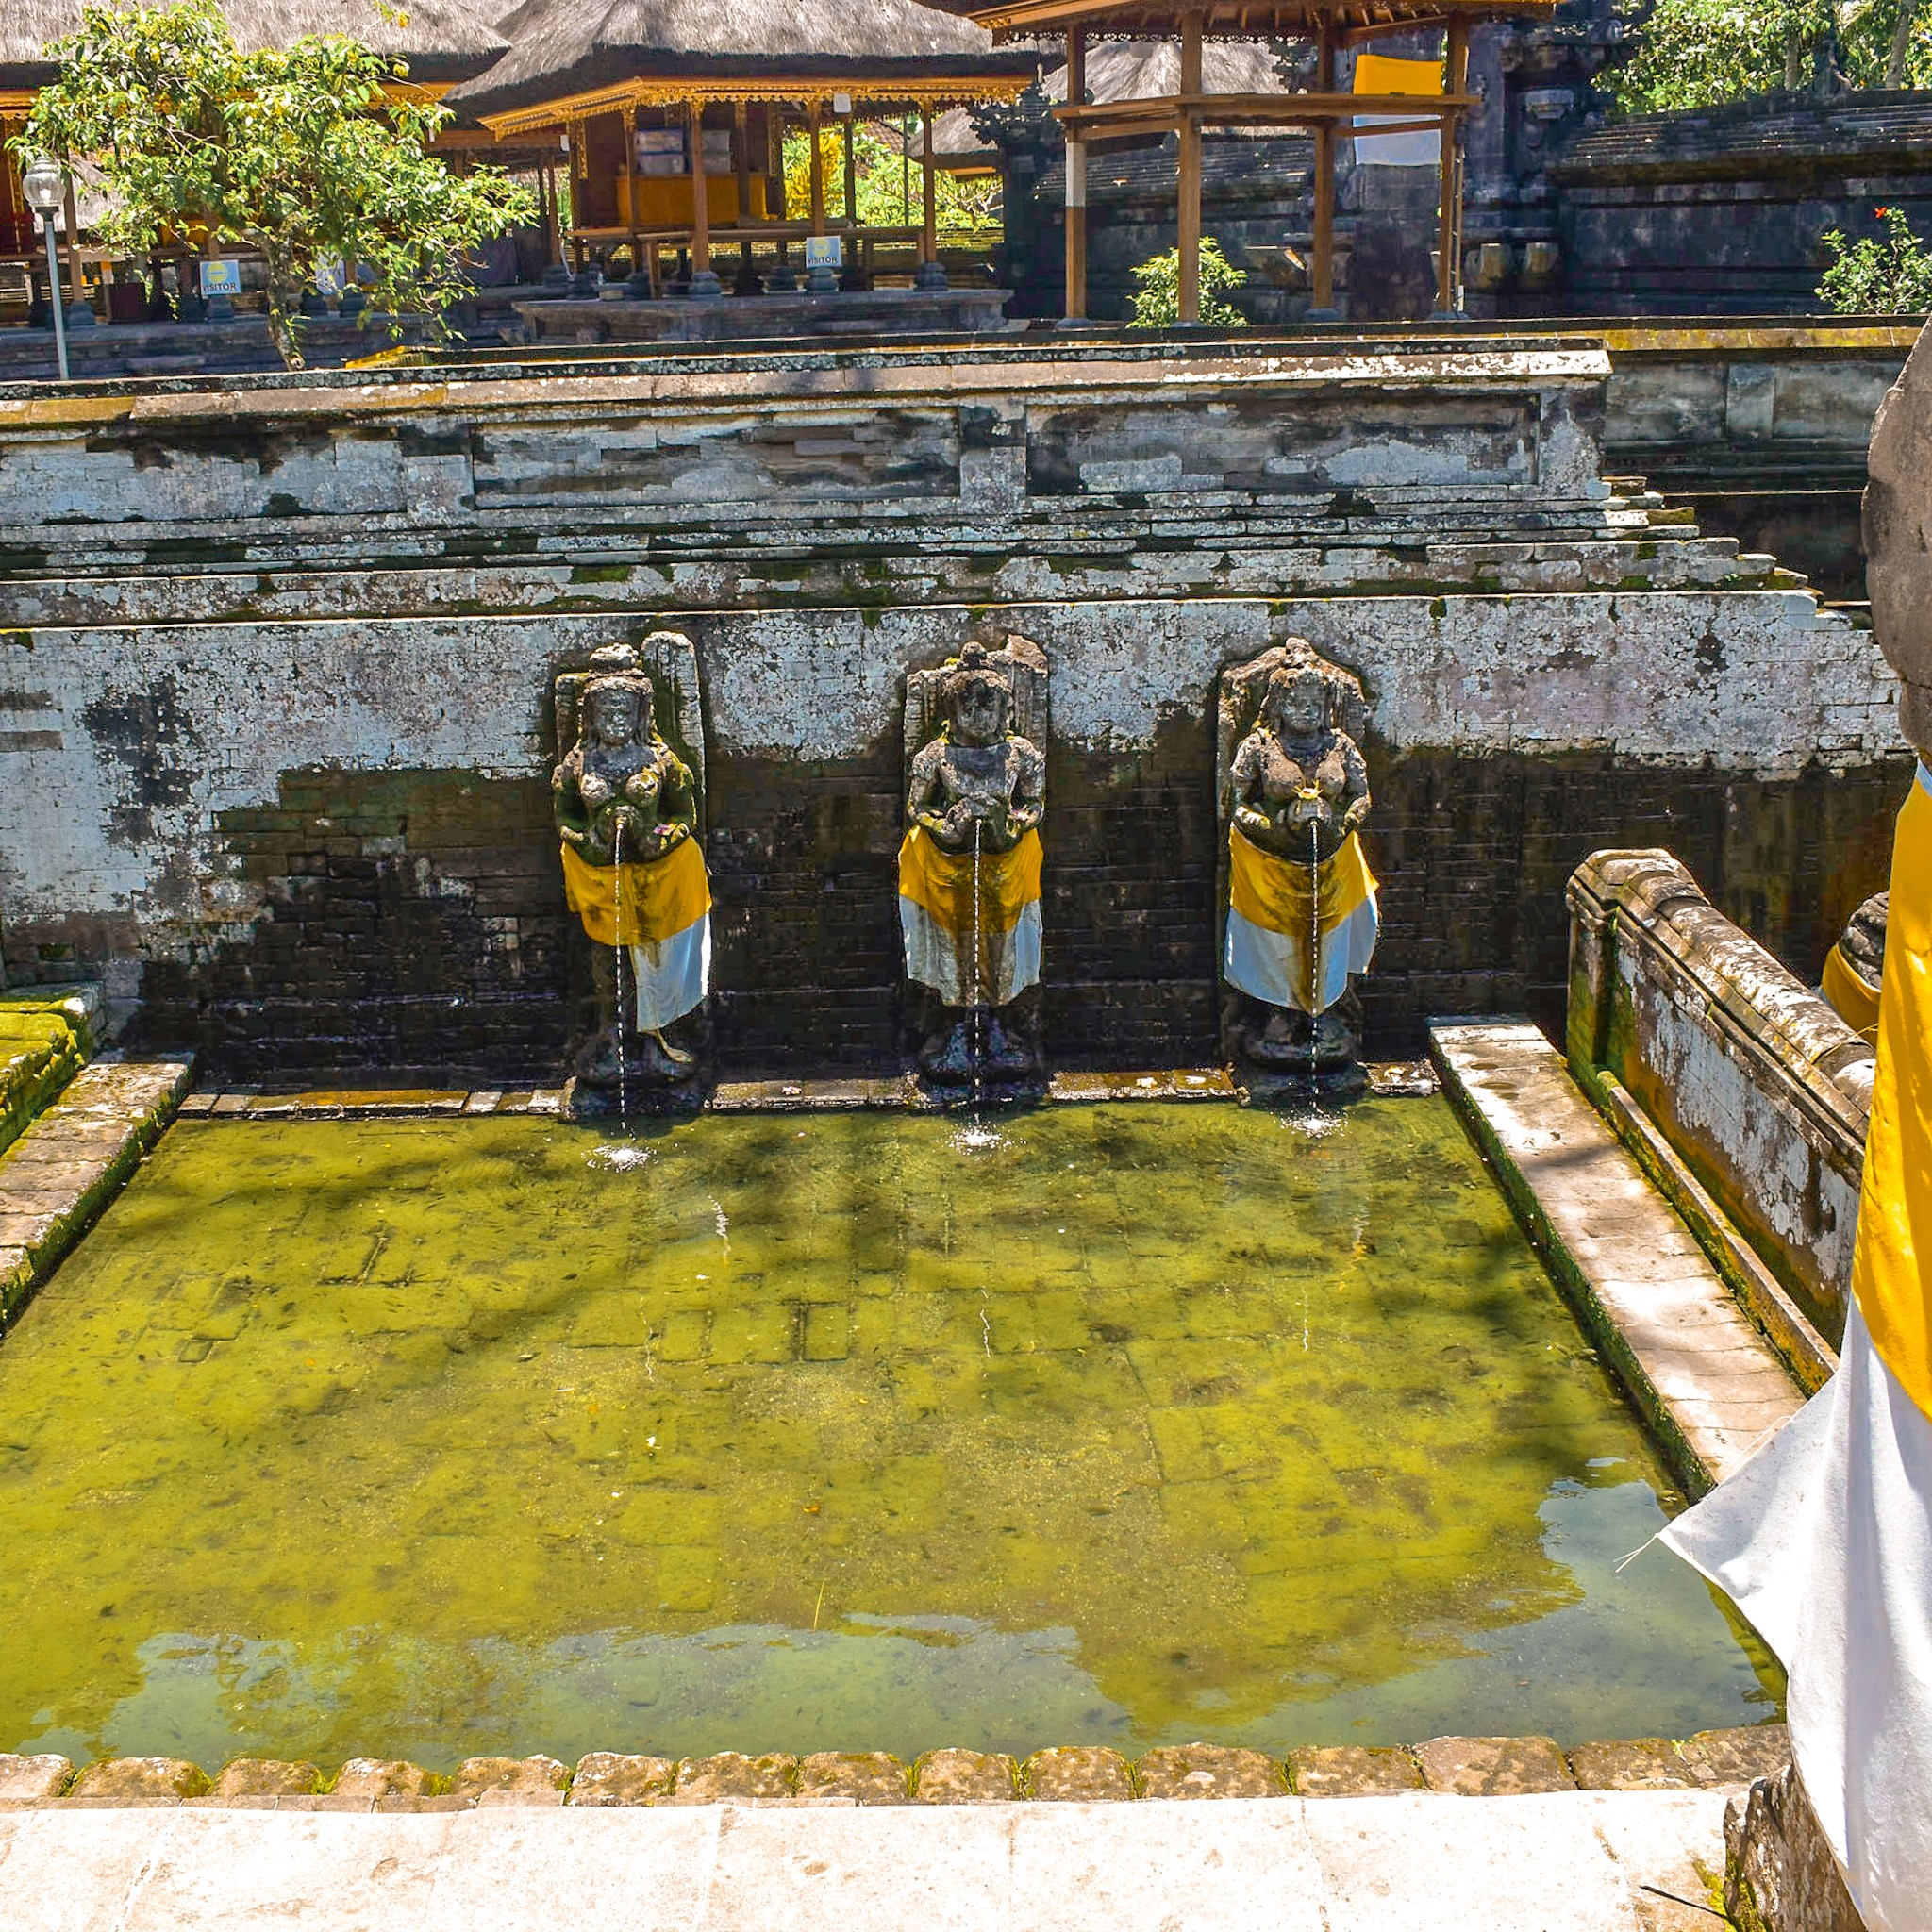 Fountains at Elephant Cave Temples in Bali